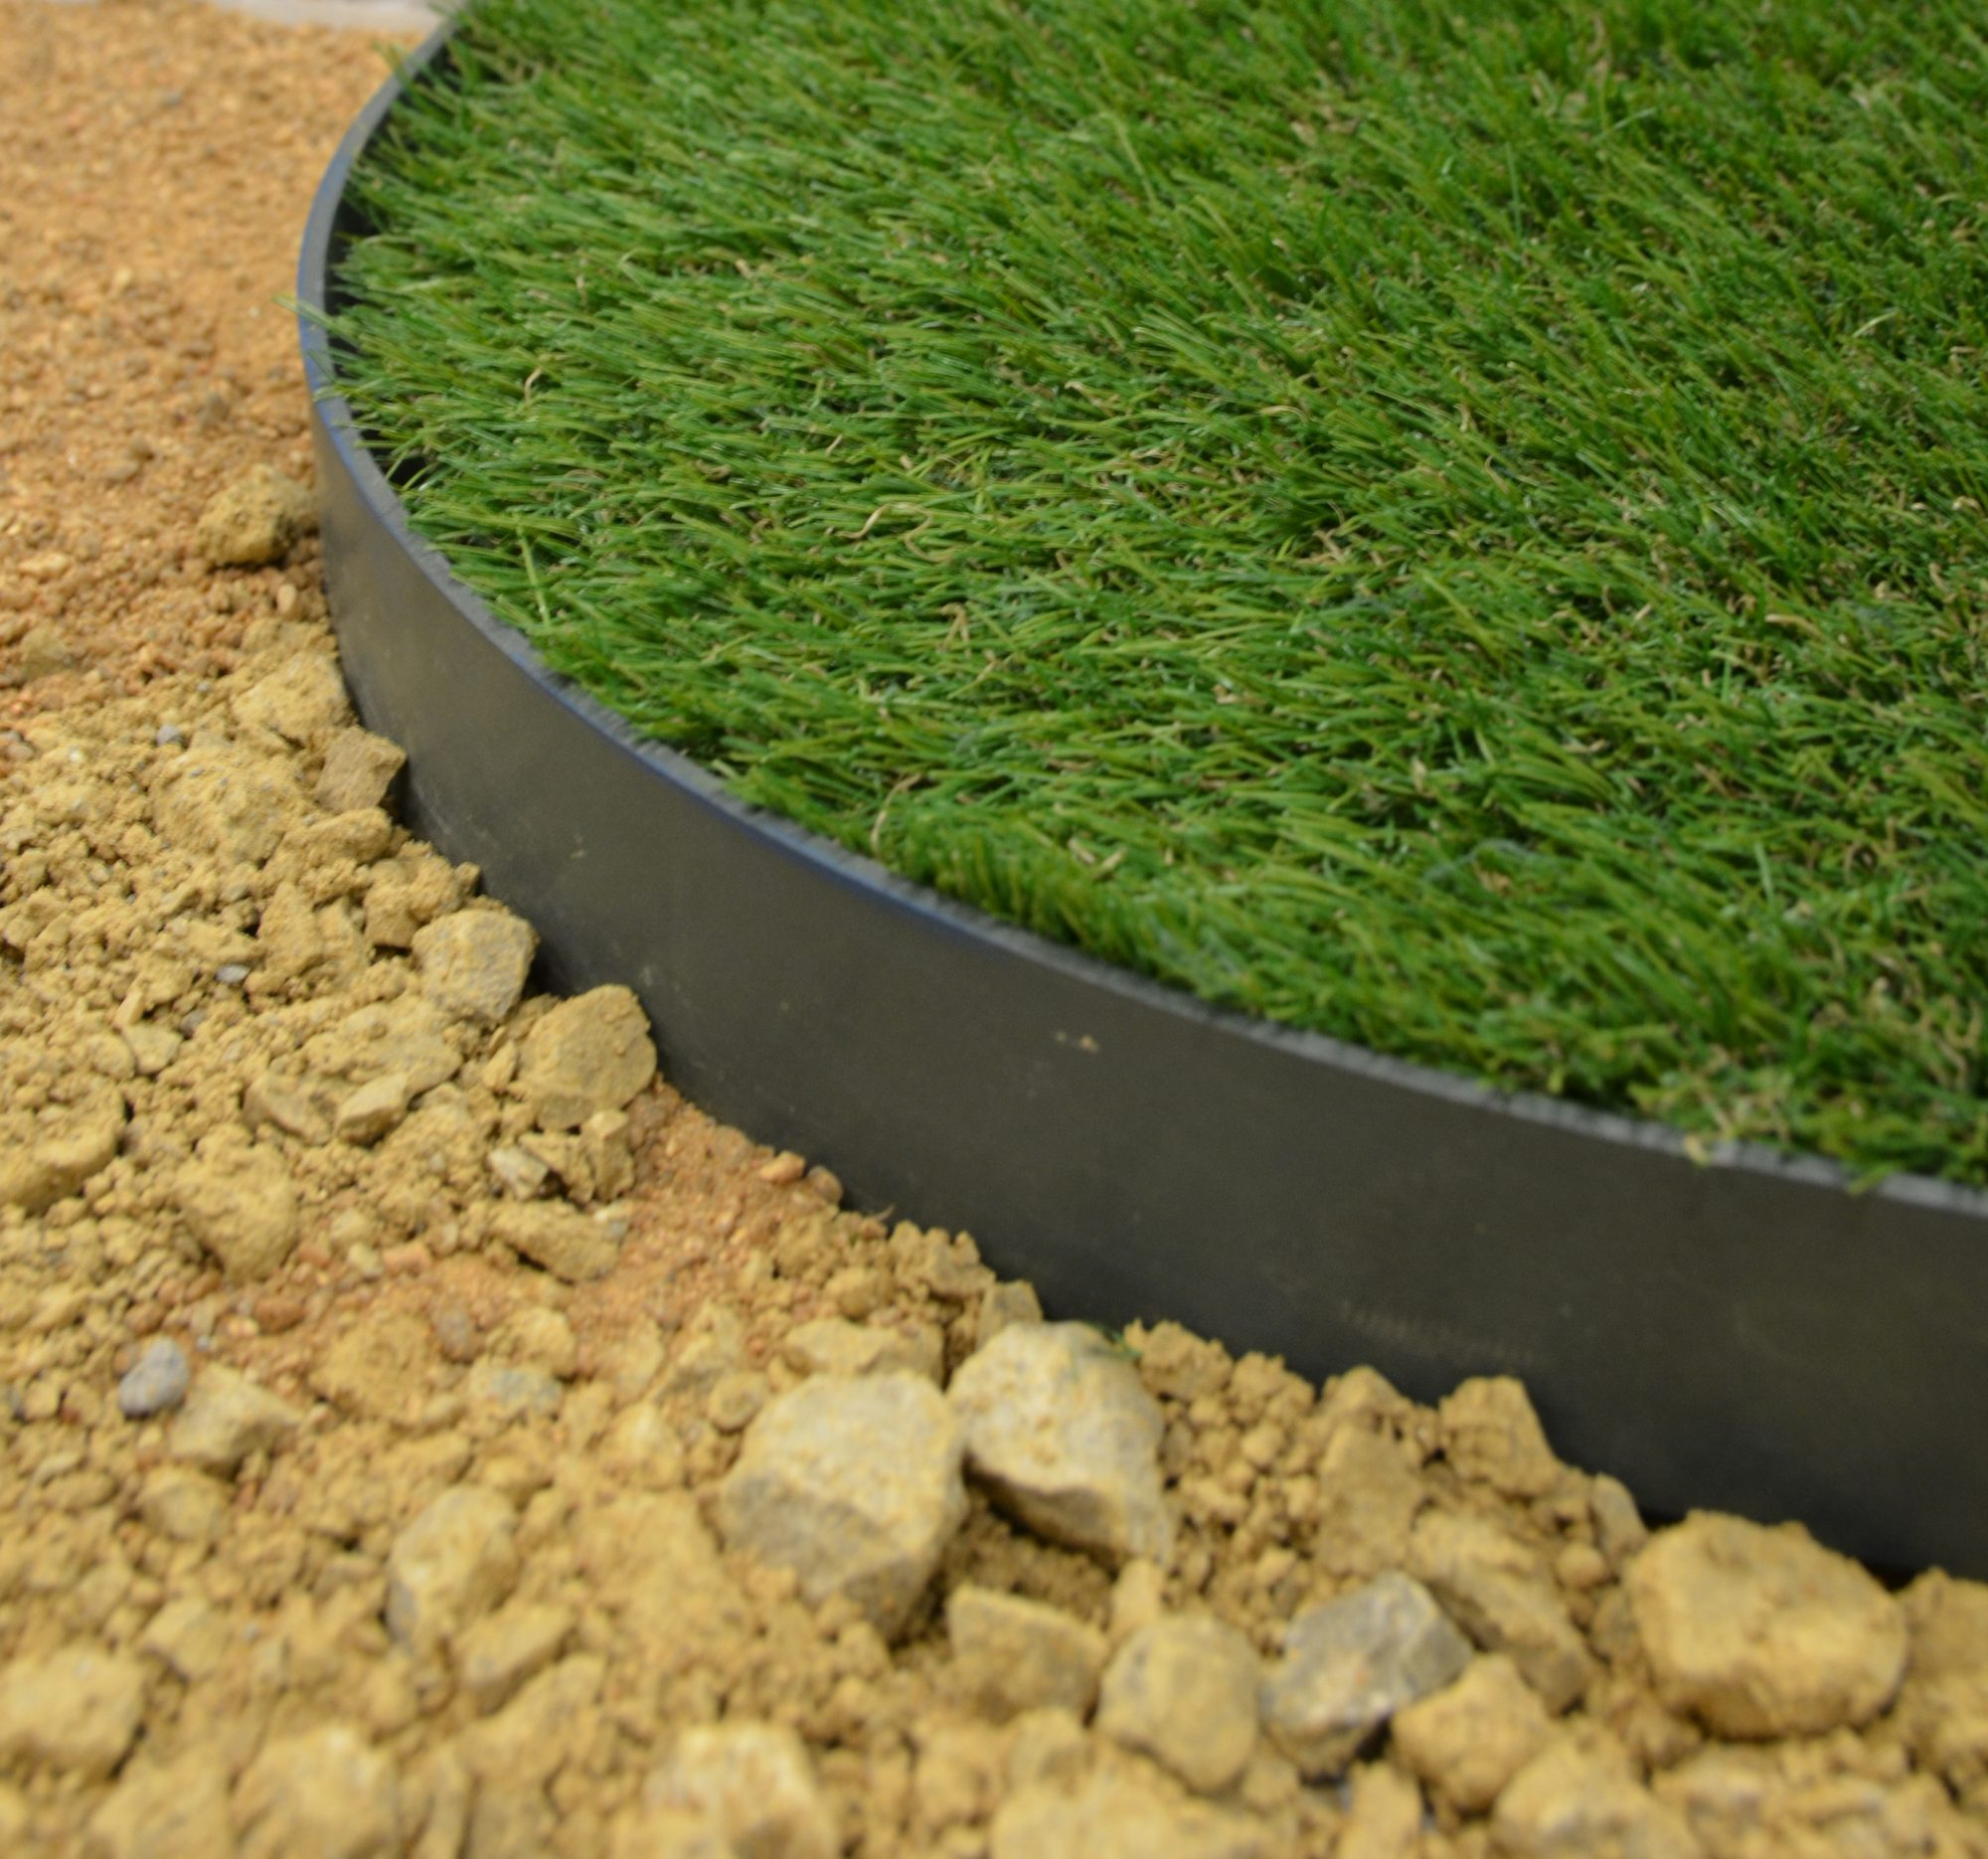 Borders-image-e1581695997840 Jouplast Lawn Edging Added To Range - Plastic Mouldings Northern